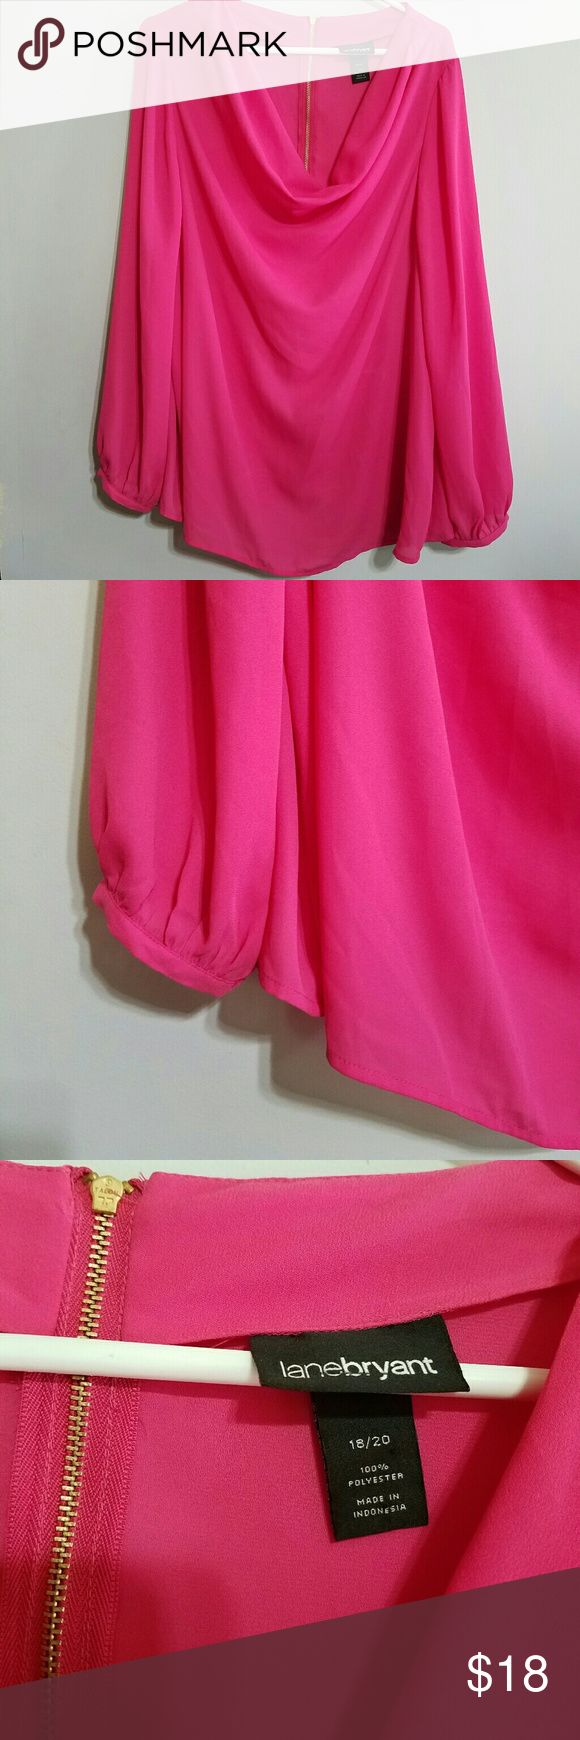 "Lane Bryant Fuchsia Blouse Size 18/20 Lane Bryant hot pink blouse with cowl neck and flowy sleeves. Gold zipper in back. Absolutely stunning!  ***And few very small spots near the bottom of the right sleeve, as shown in the last picture.   Measures lying flat  Bust 25"" Length 29"" Lane Bryant Tops Blouses"